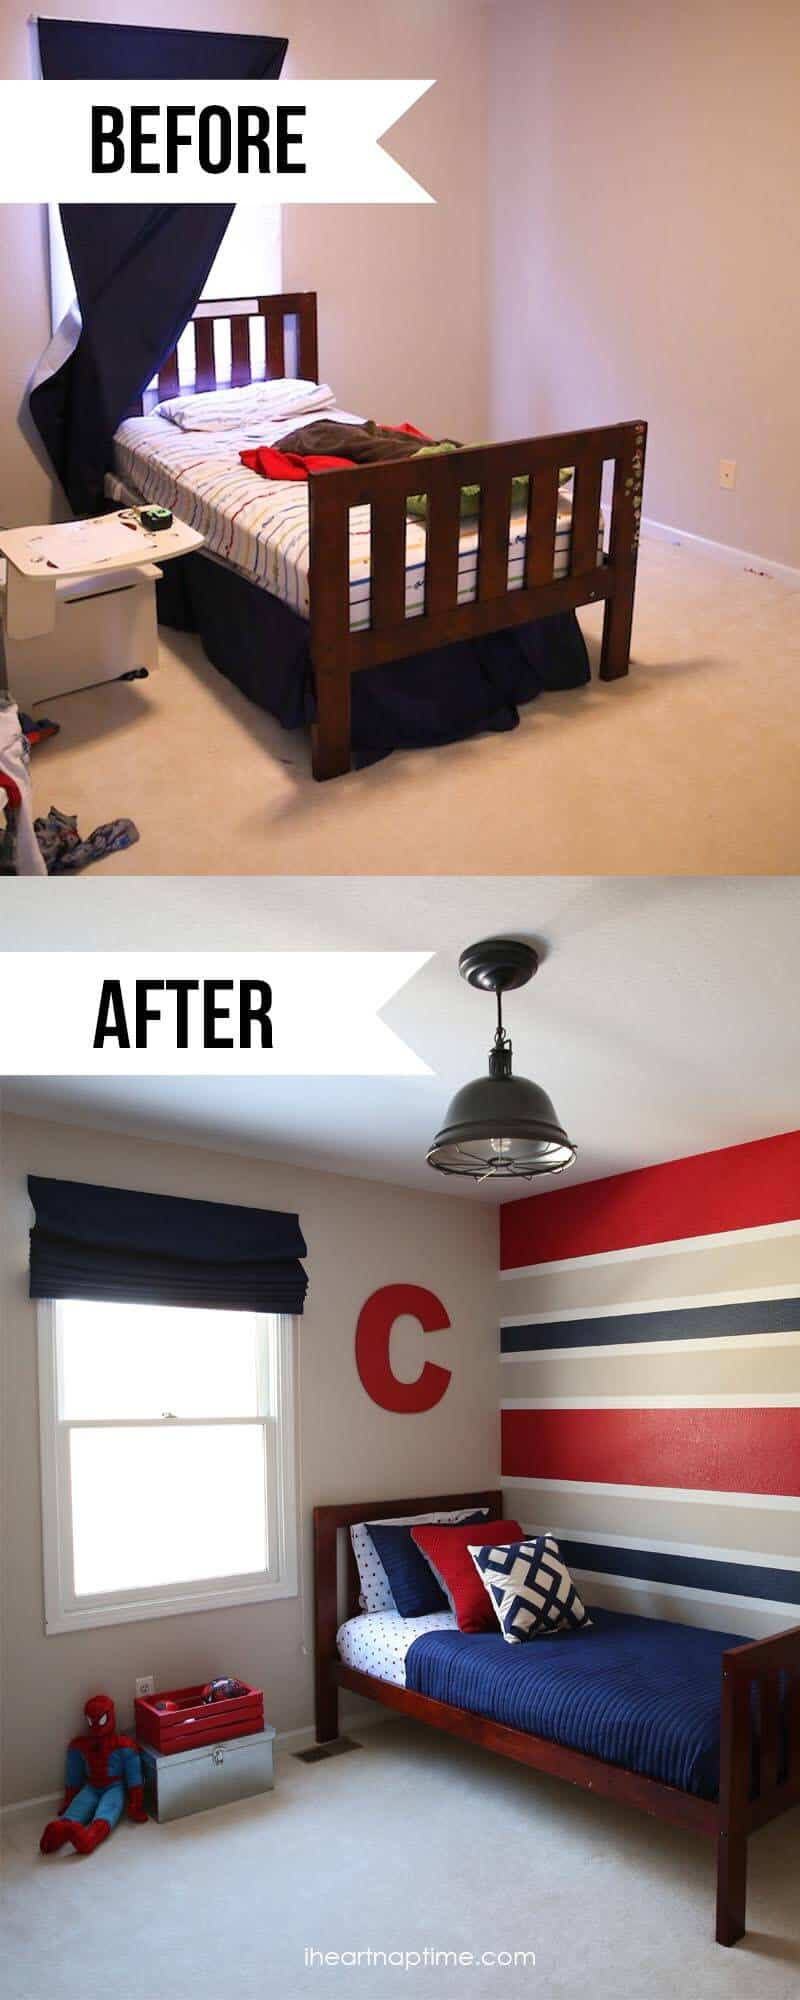 Beforea and after super hero room